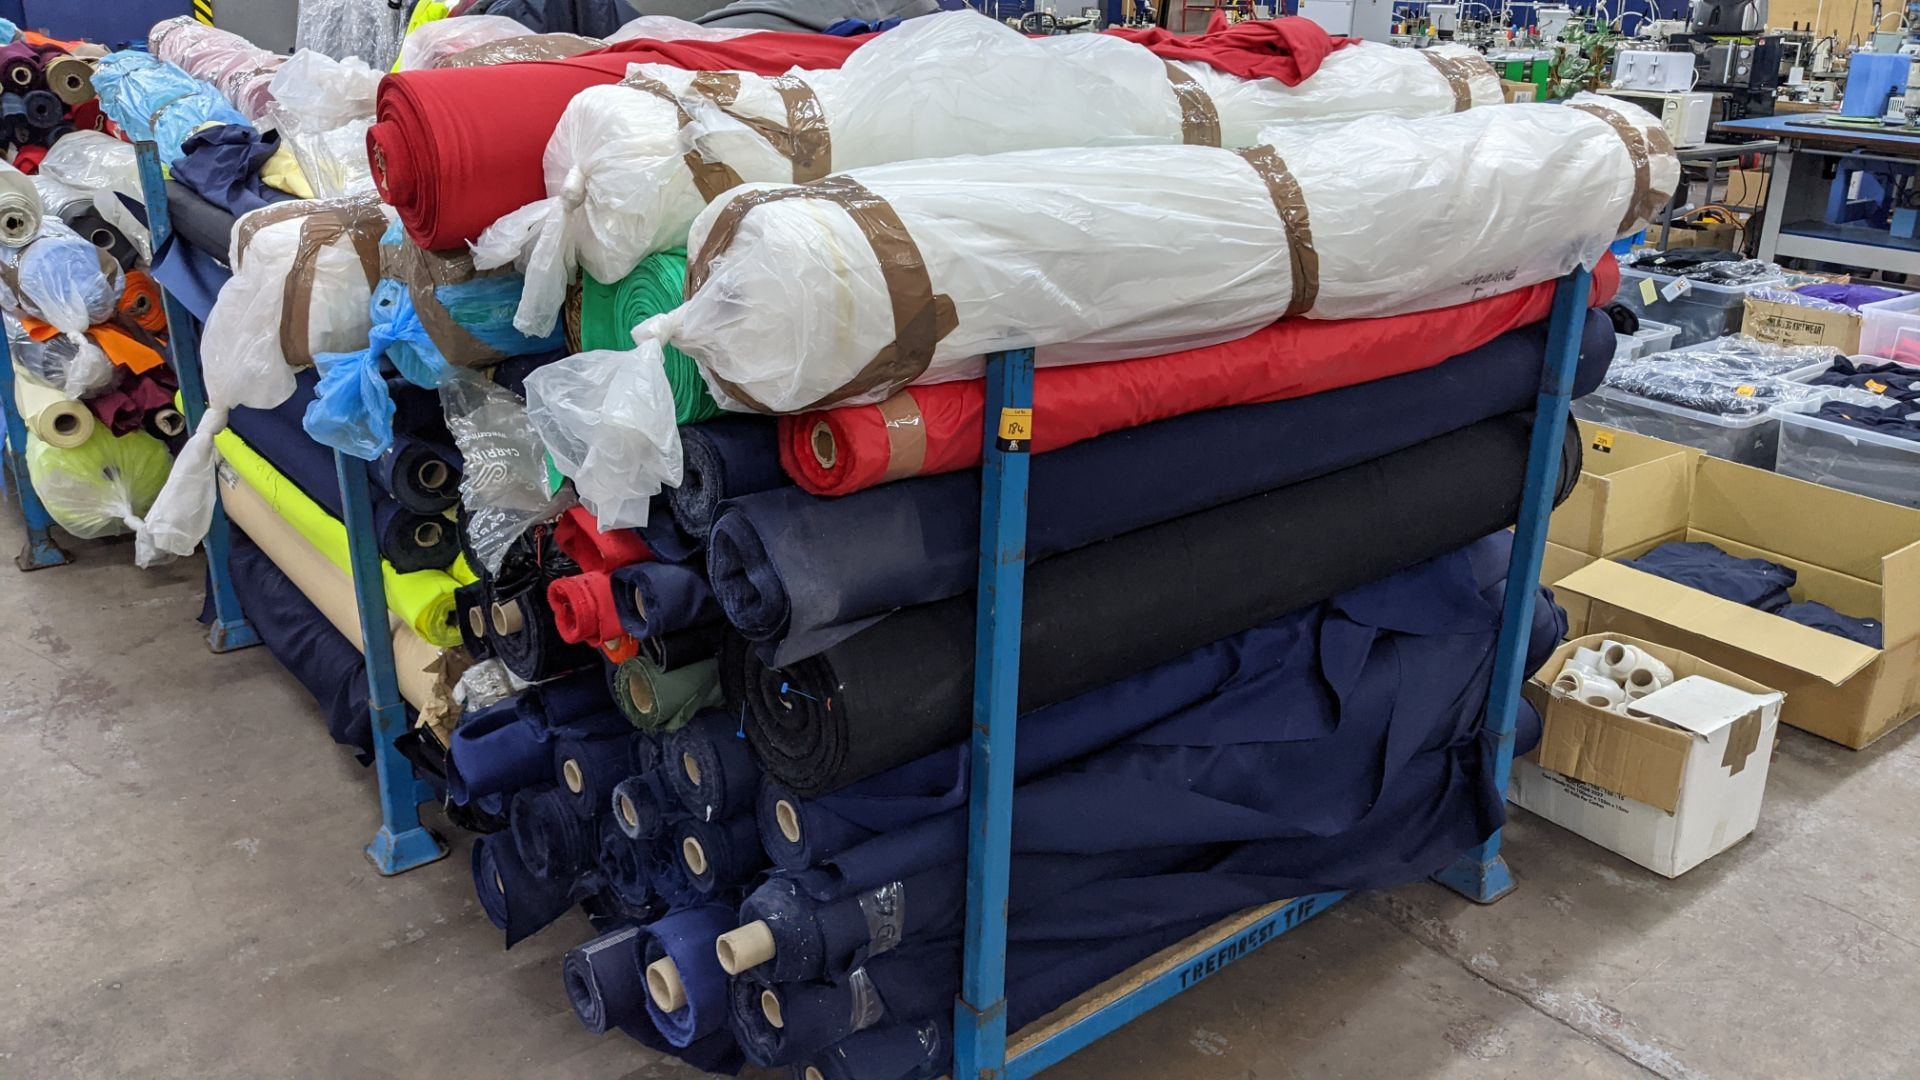 The contents of a large stillage of fabric. Please note the stillage is excluded and cannot be remo